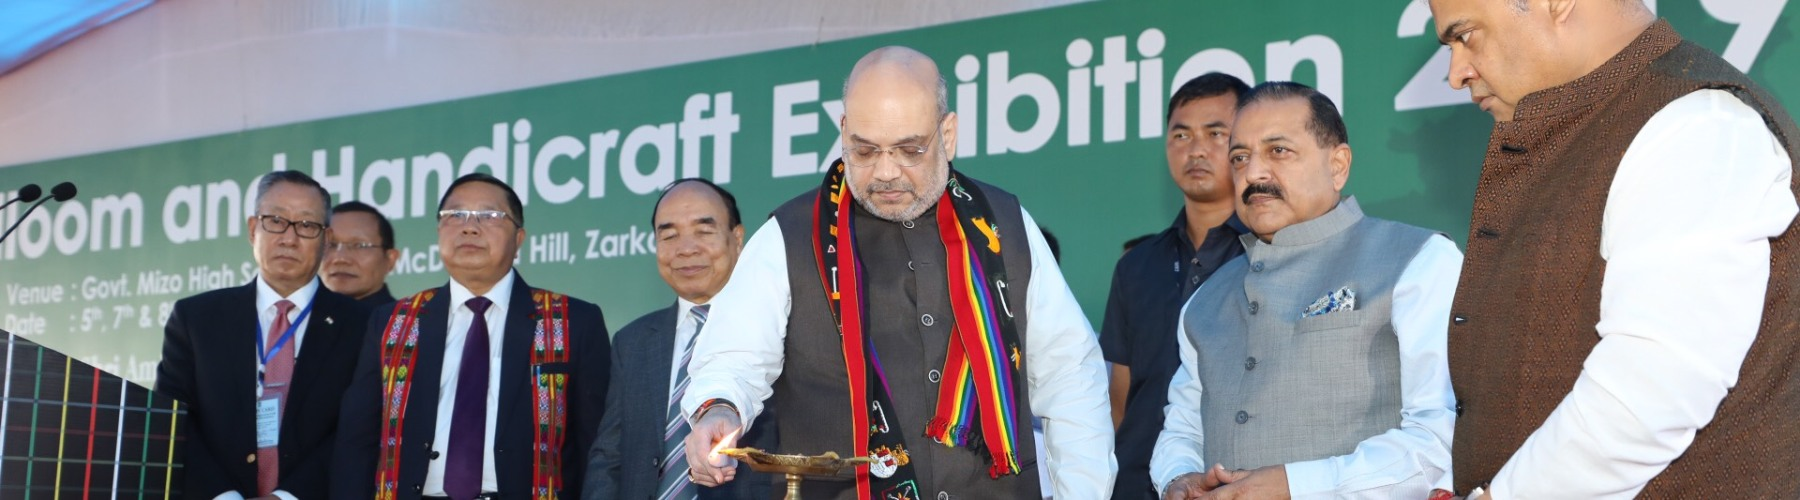 Union Minister for Home Affairs, Shri Amit Shah lighting the lamp at the inauguration of the North East Handloom and Handicraft Exhibition in Aizawl, Mizoram  on October 5, 2019.